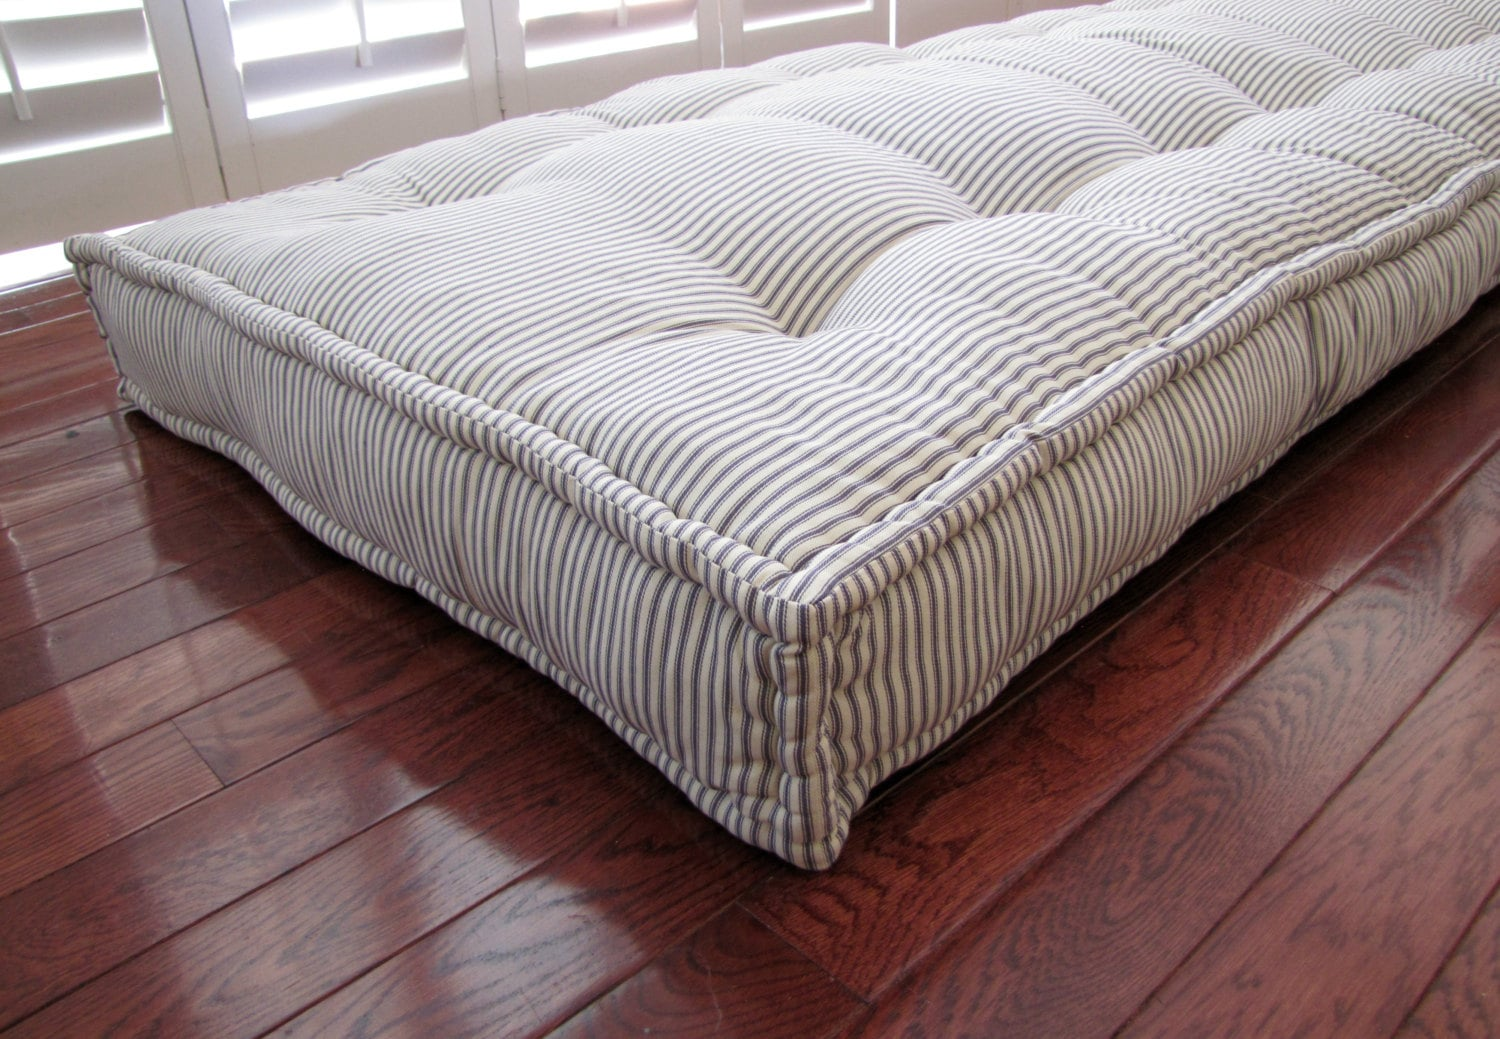 Custom Cushions Blue Ticking Stripe French Mattress Quilting Hand Tufted Daybed Mattress Window Seat Or Bench Seat Cushion Floor Pillow